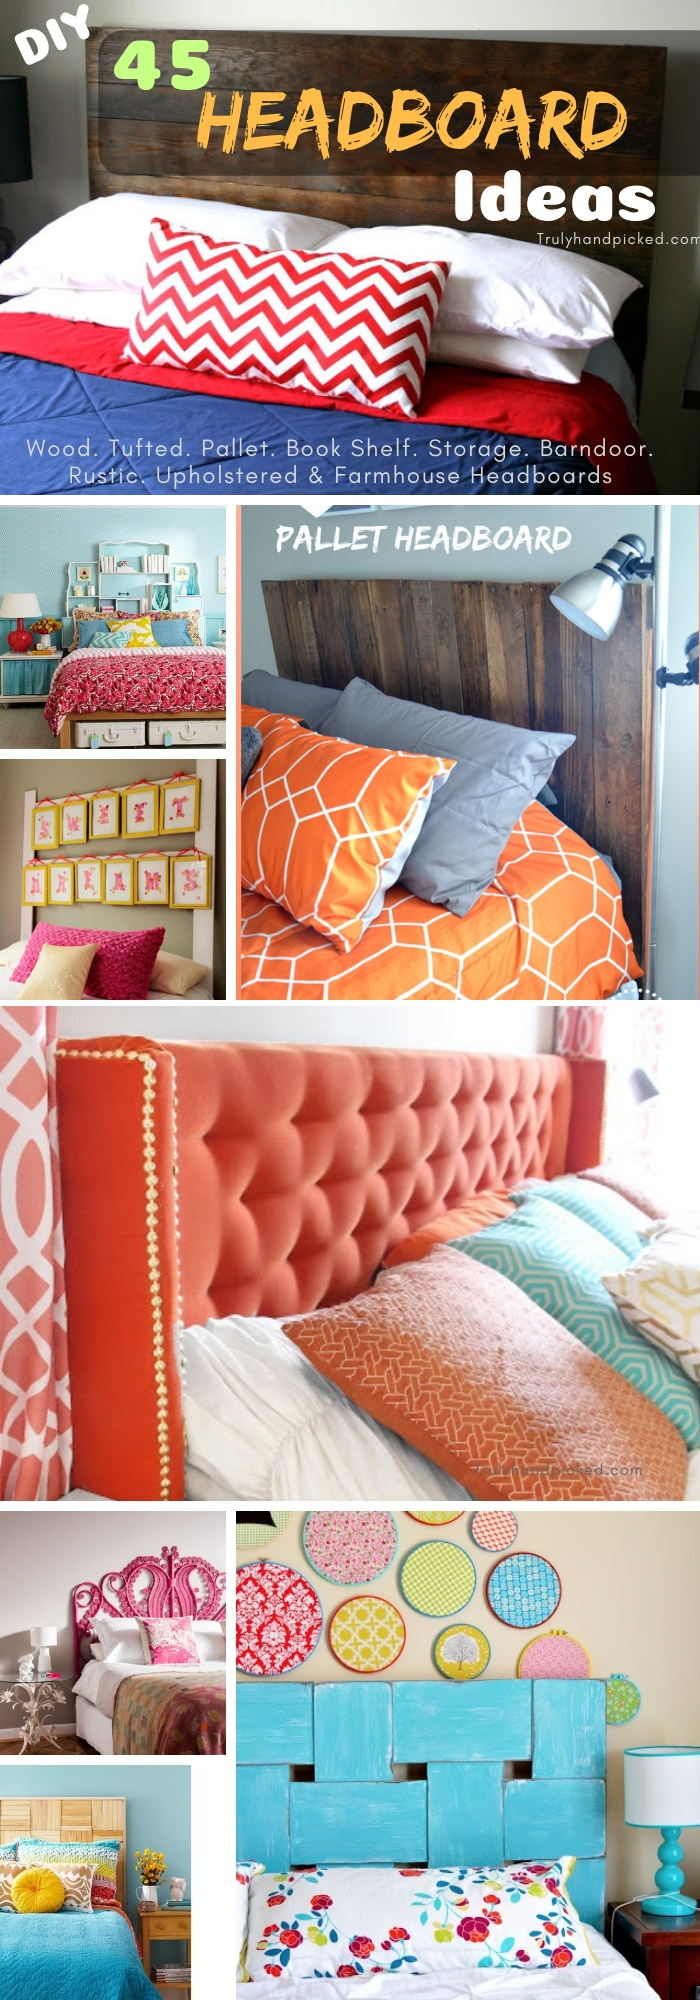 45 Diy Bedroom Headboard Ideas Inexpensive Creative Makeover Ideas